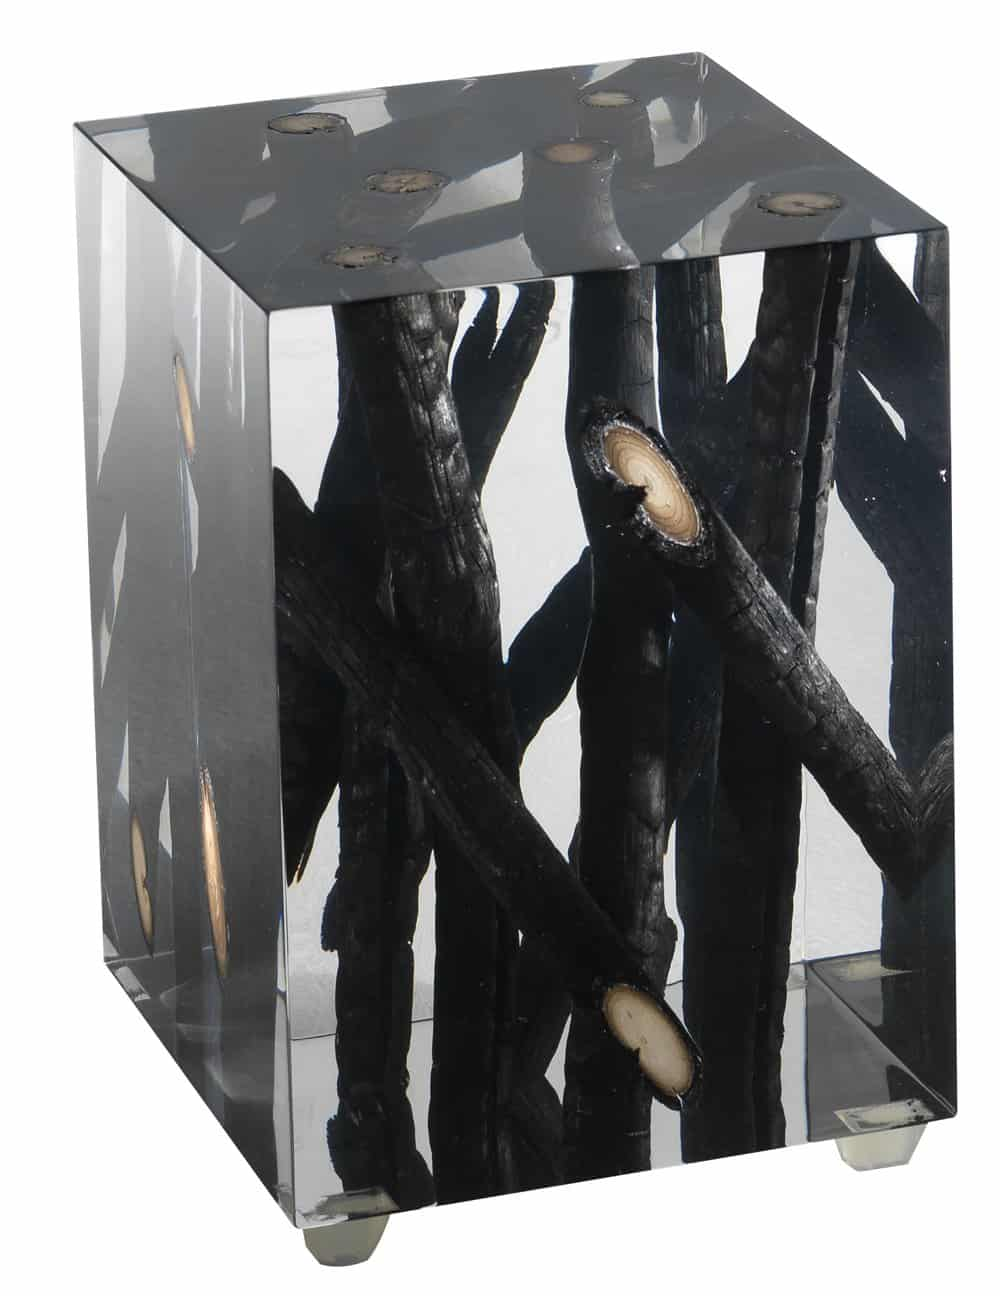 acrylic_and_branches_side_table_by_Michael_Hawkins 3